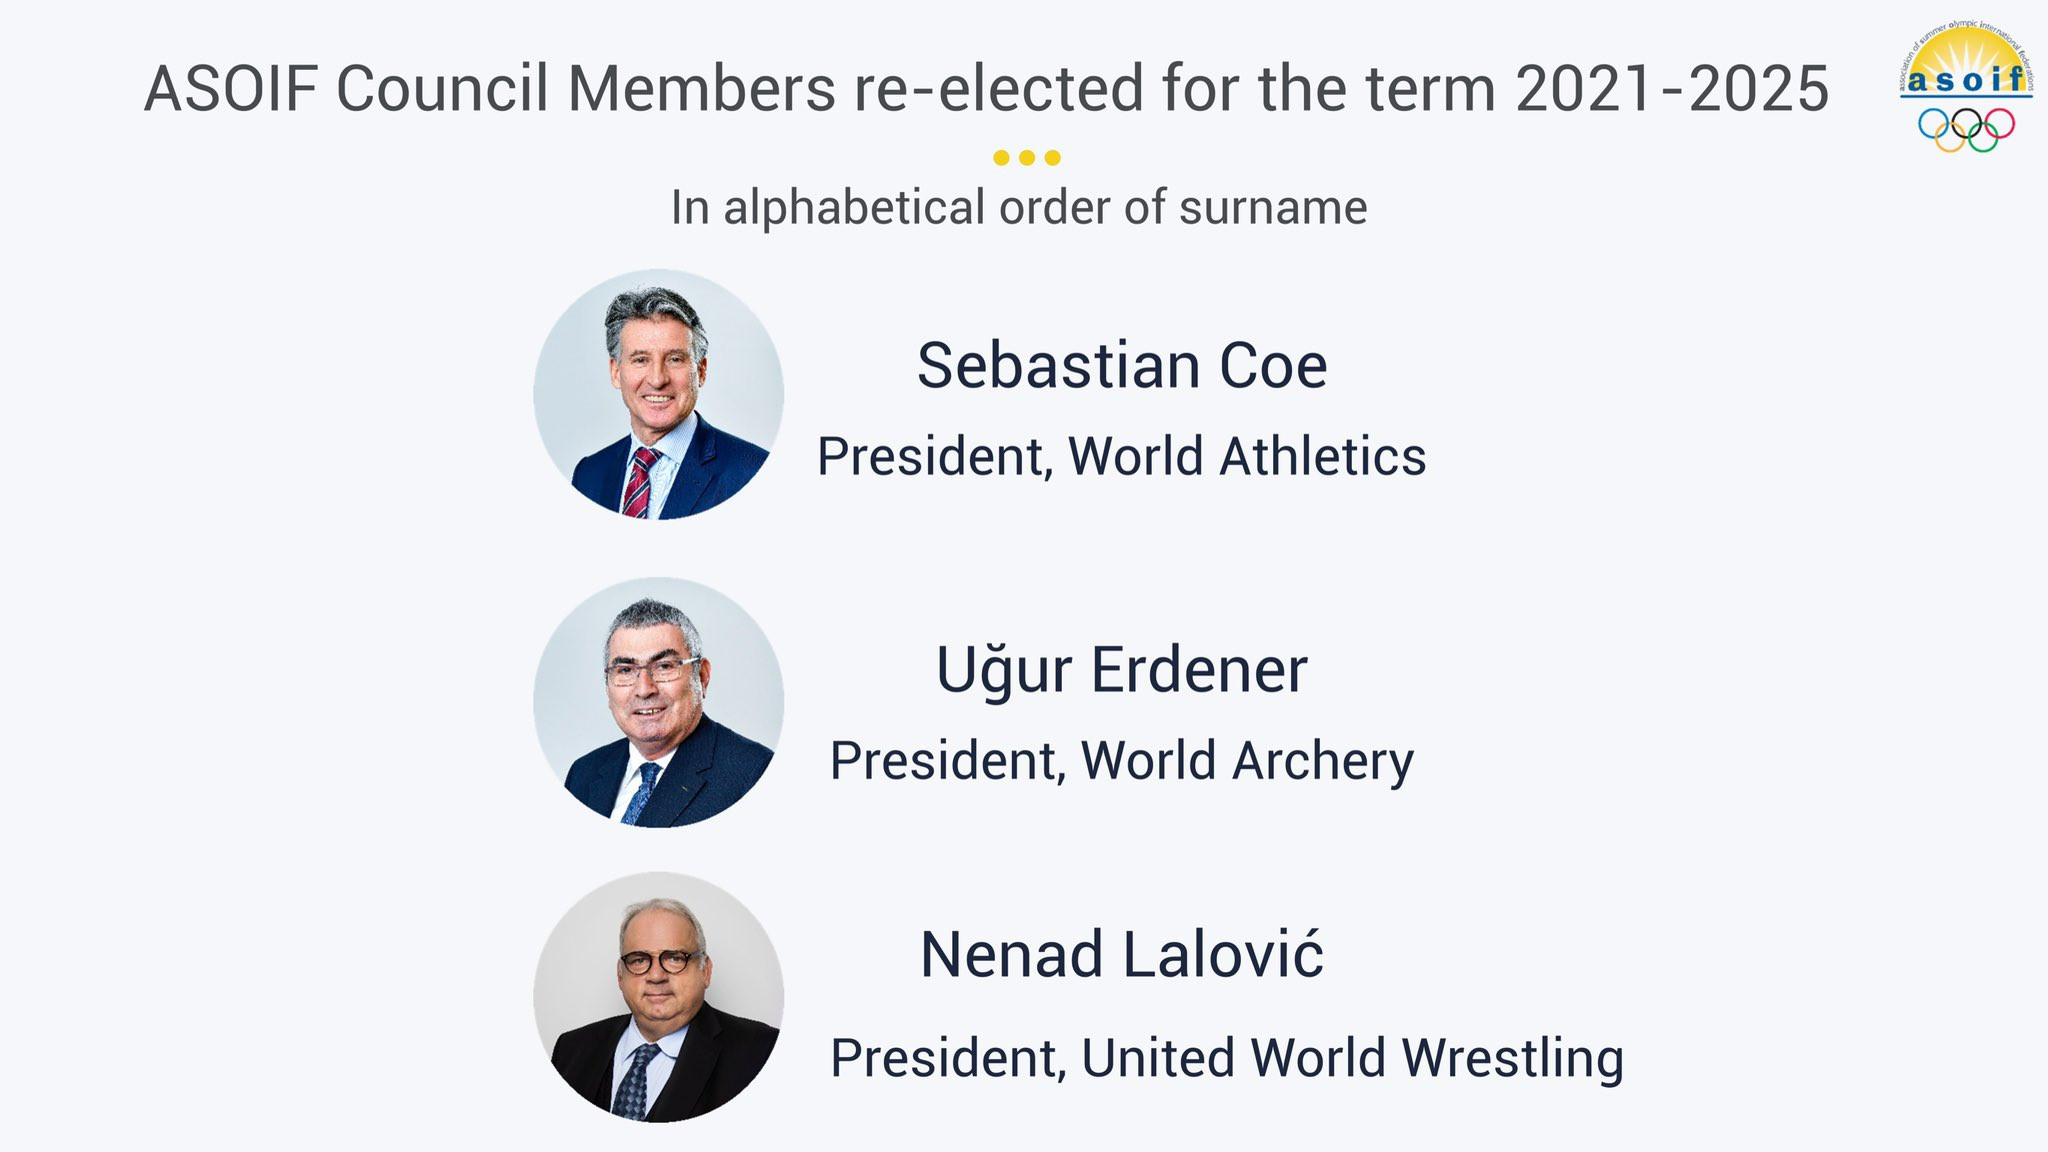 Coe, Erdener and Lalovic re-elected to ASOIF Council